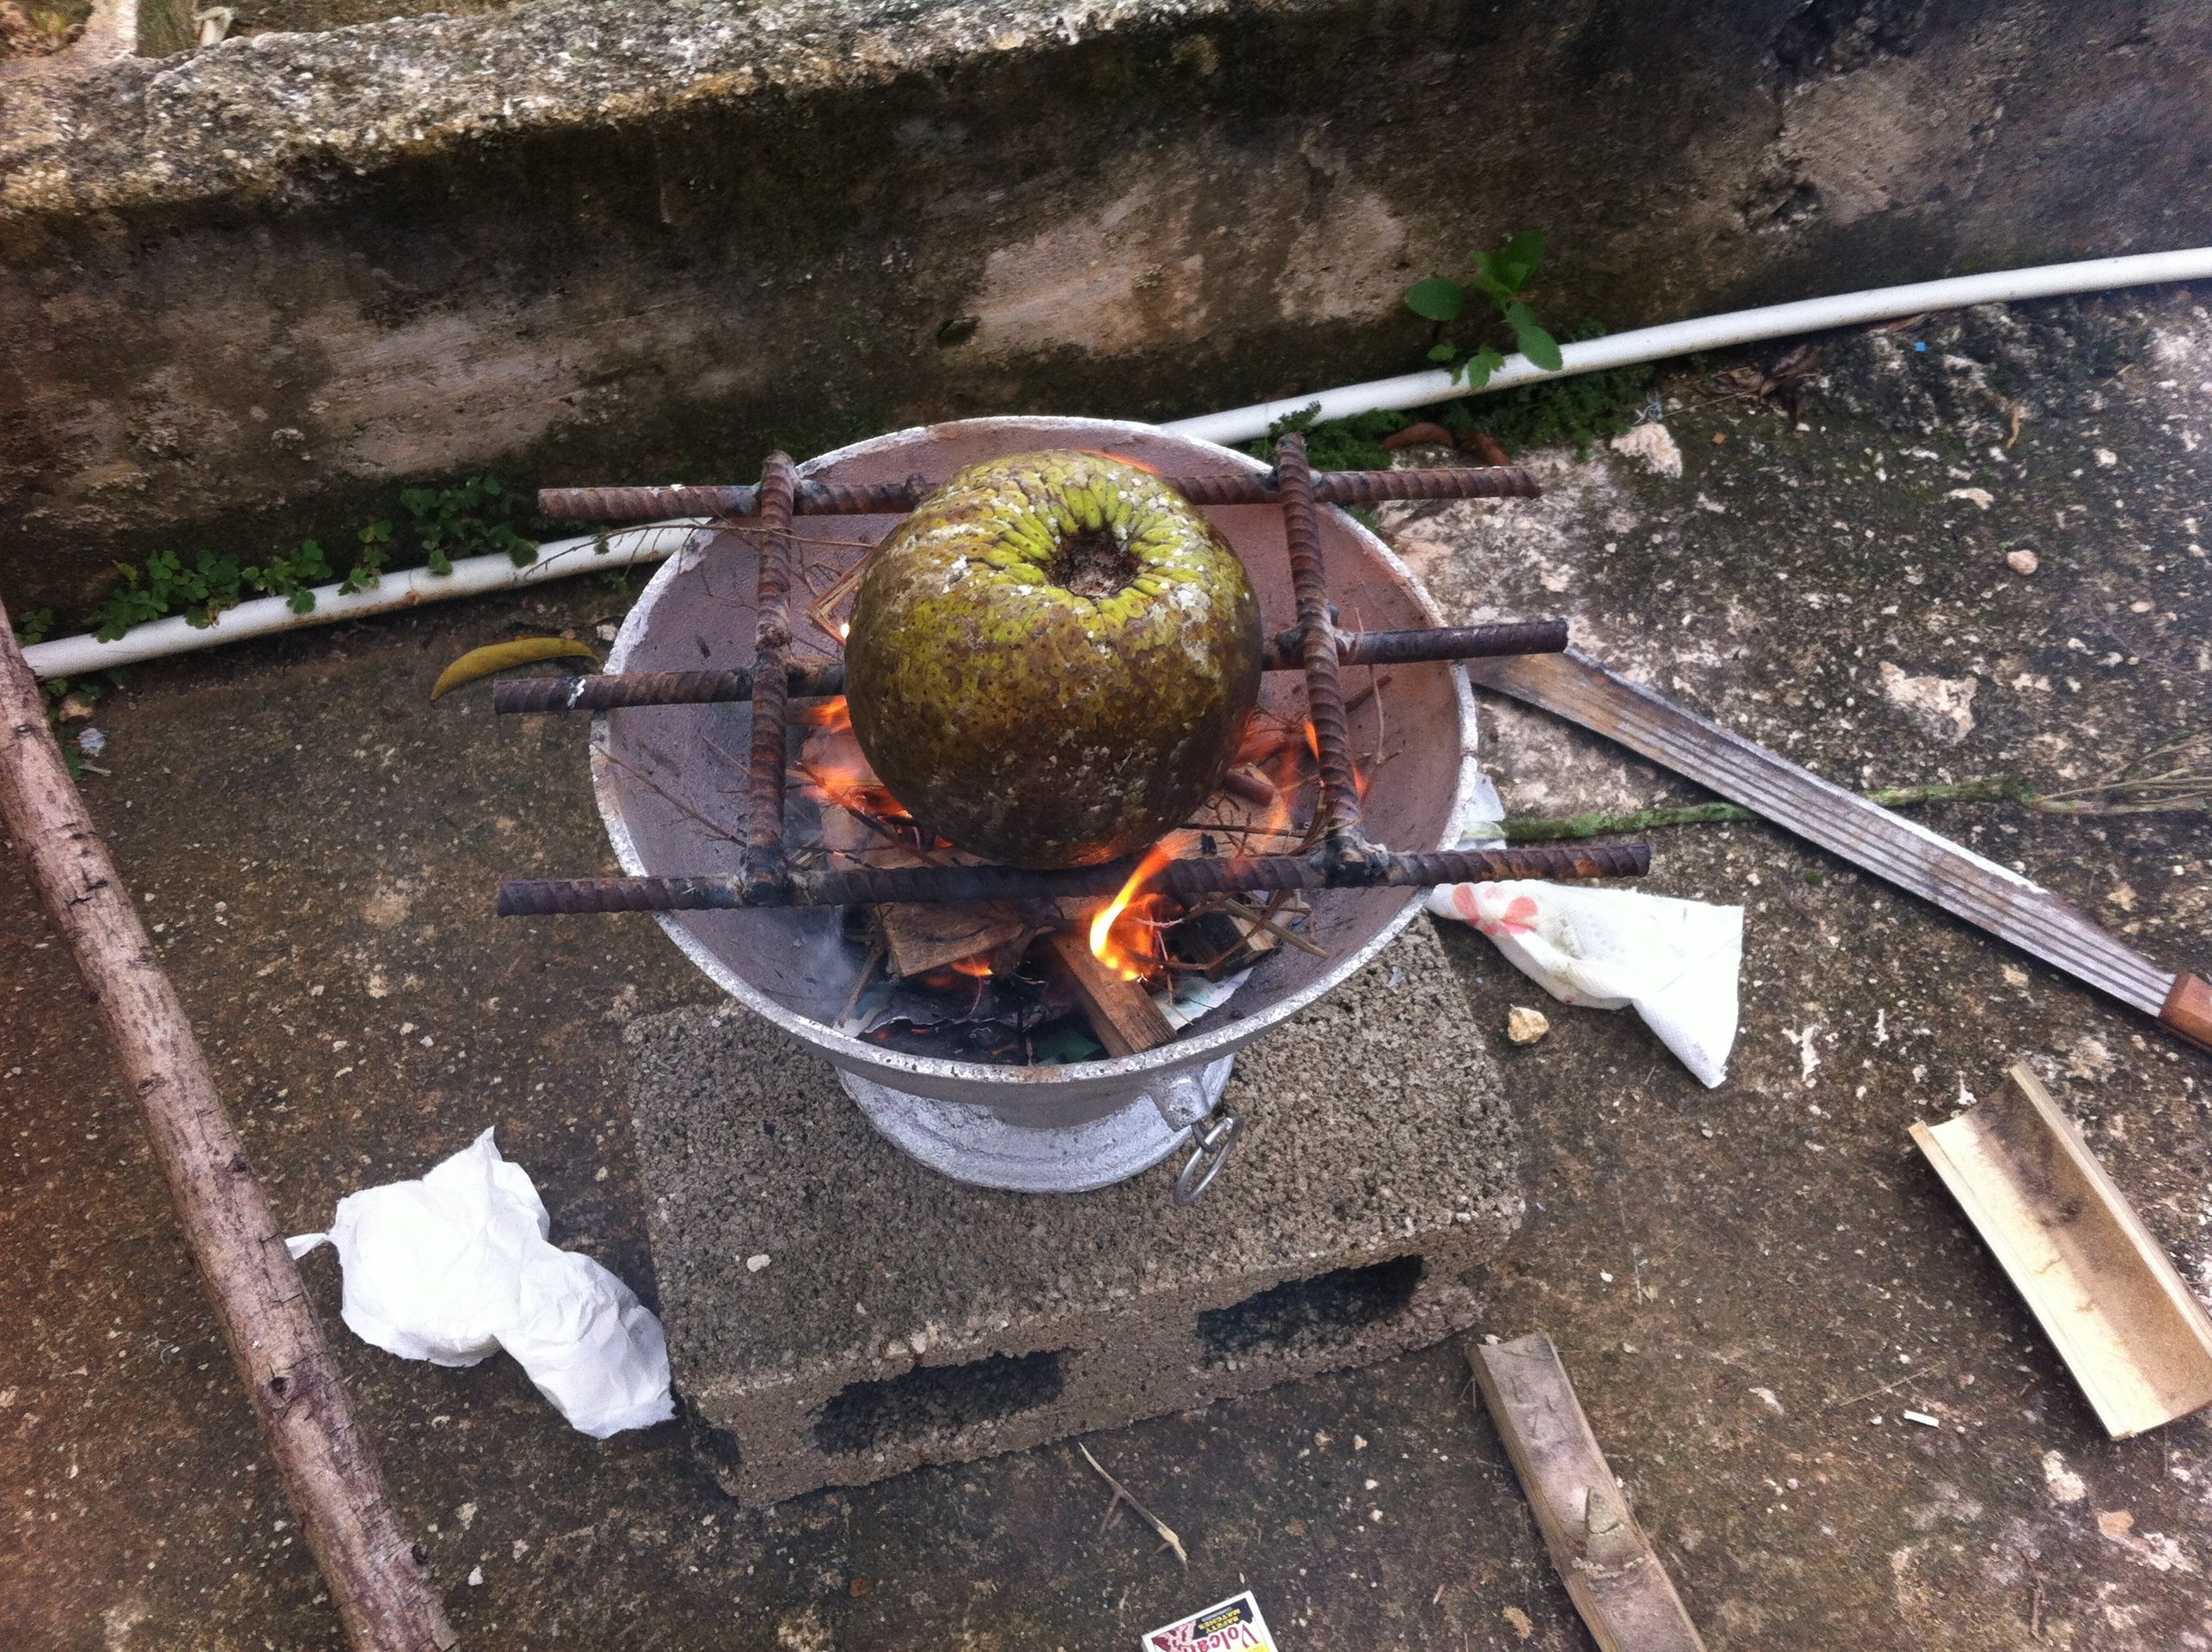 Roasting some breadfruit!